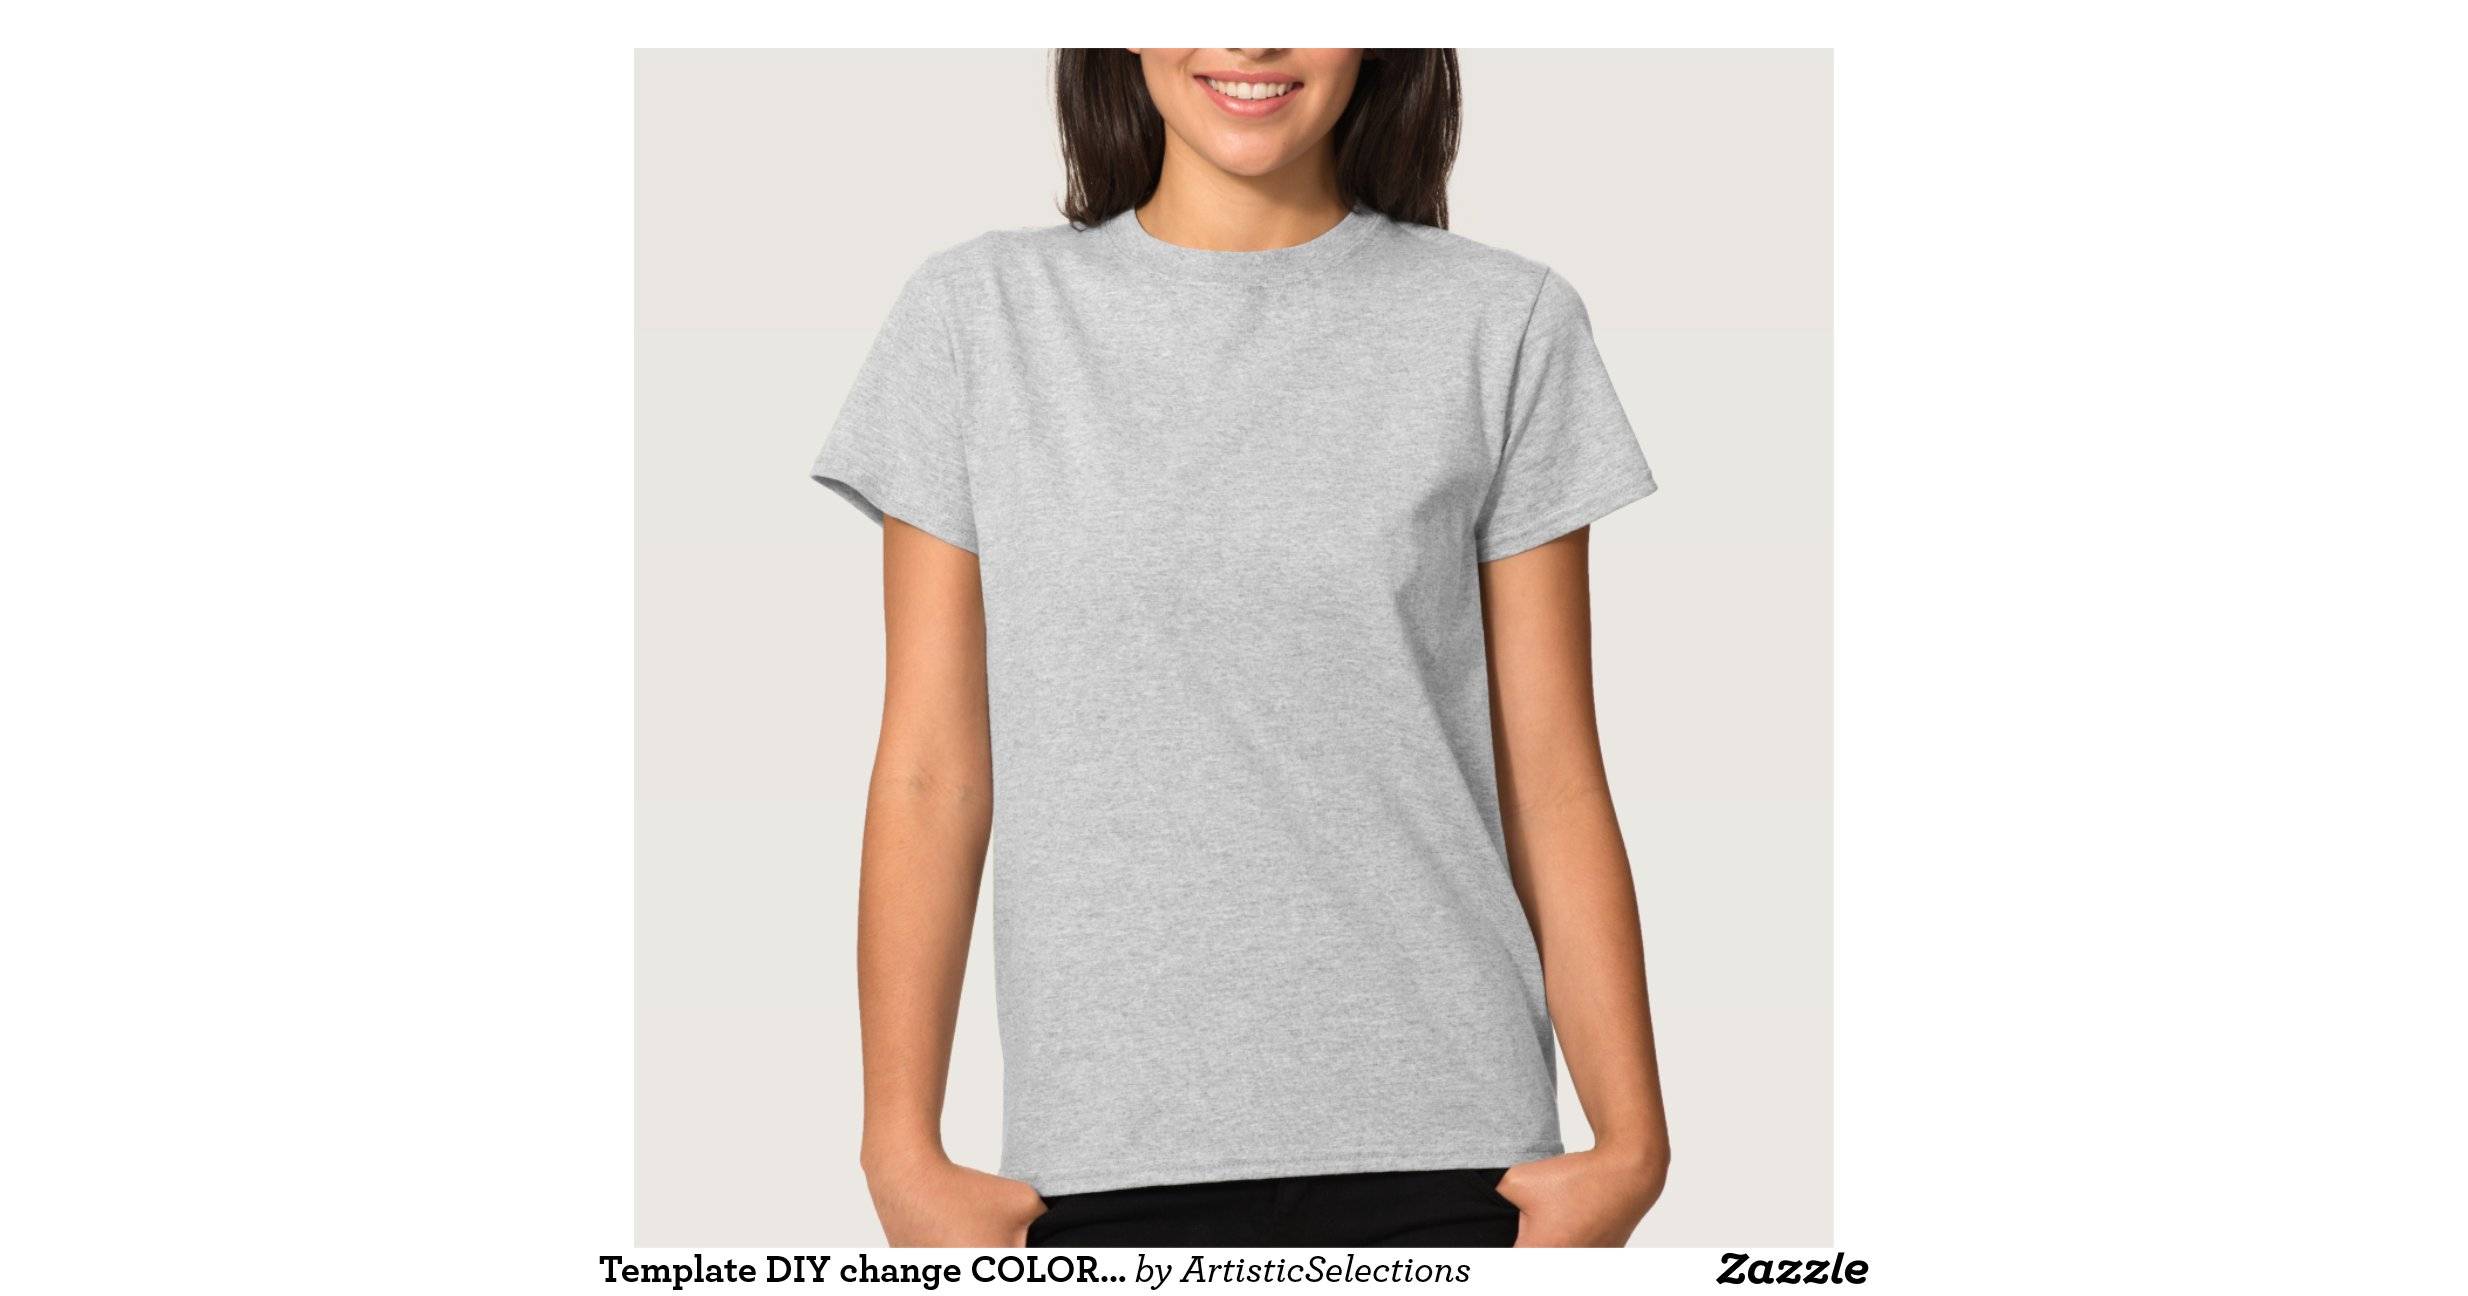 Template diy change color add text greeting photo t shirt for Zazzle t shirt template